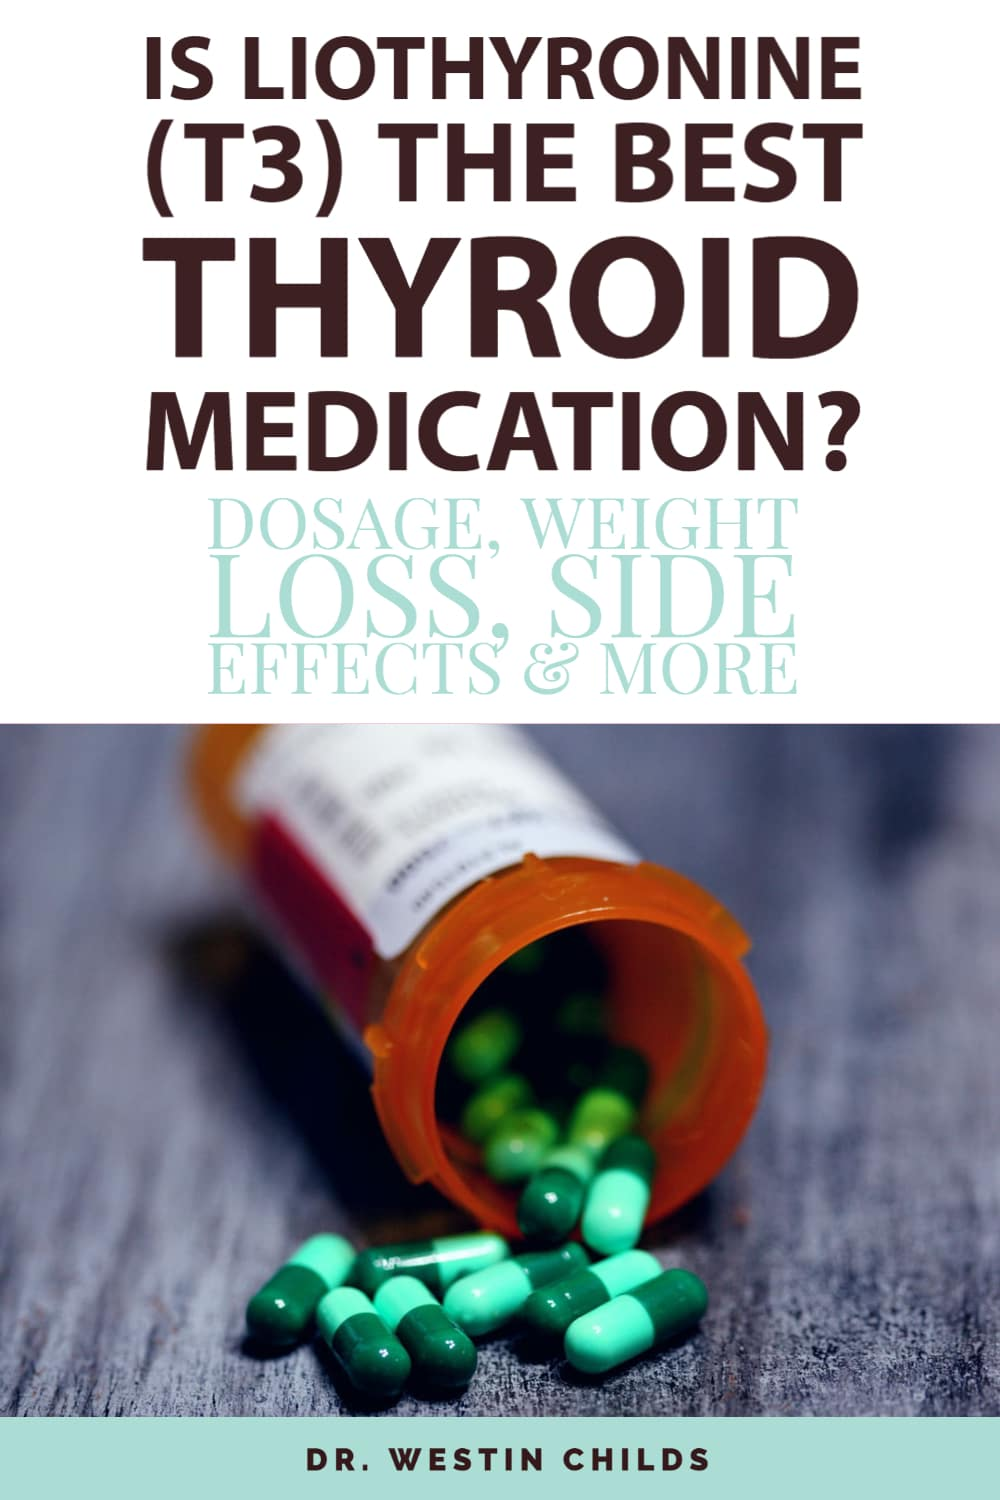 is liothyronine the best thyroid medication?